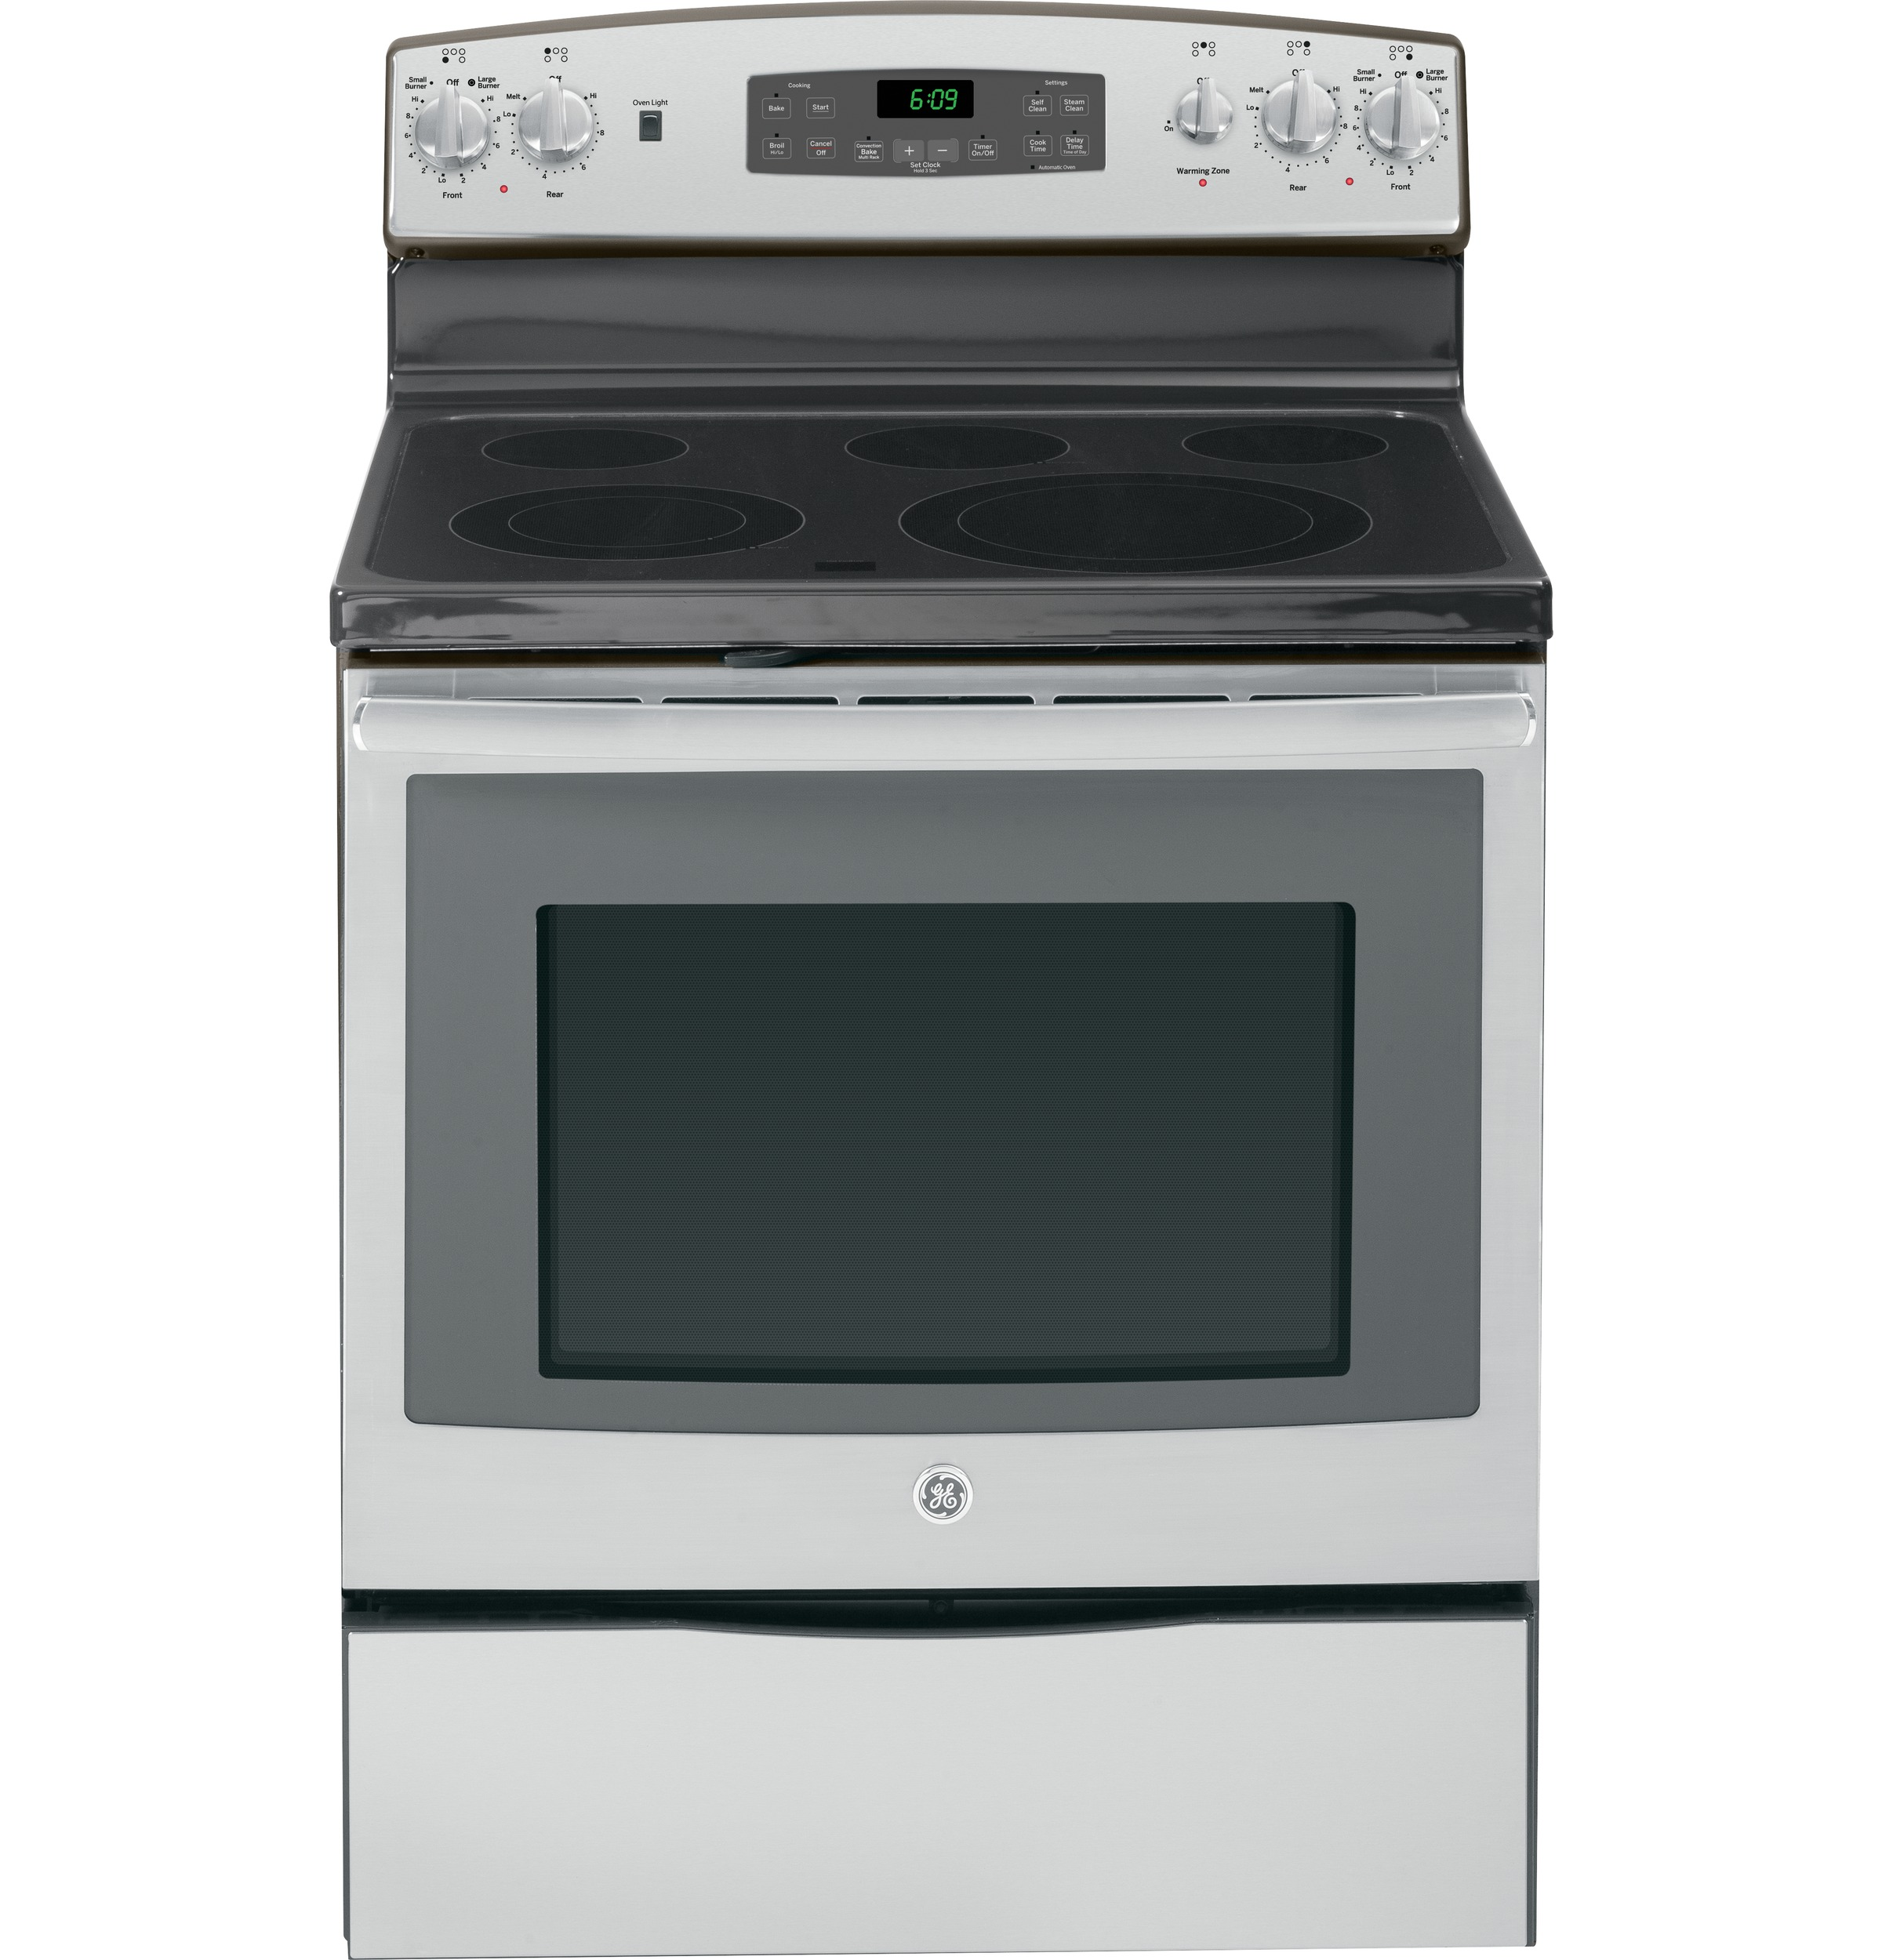 Owner's Manual - geappliances.com